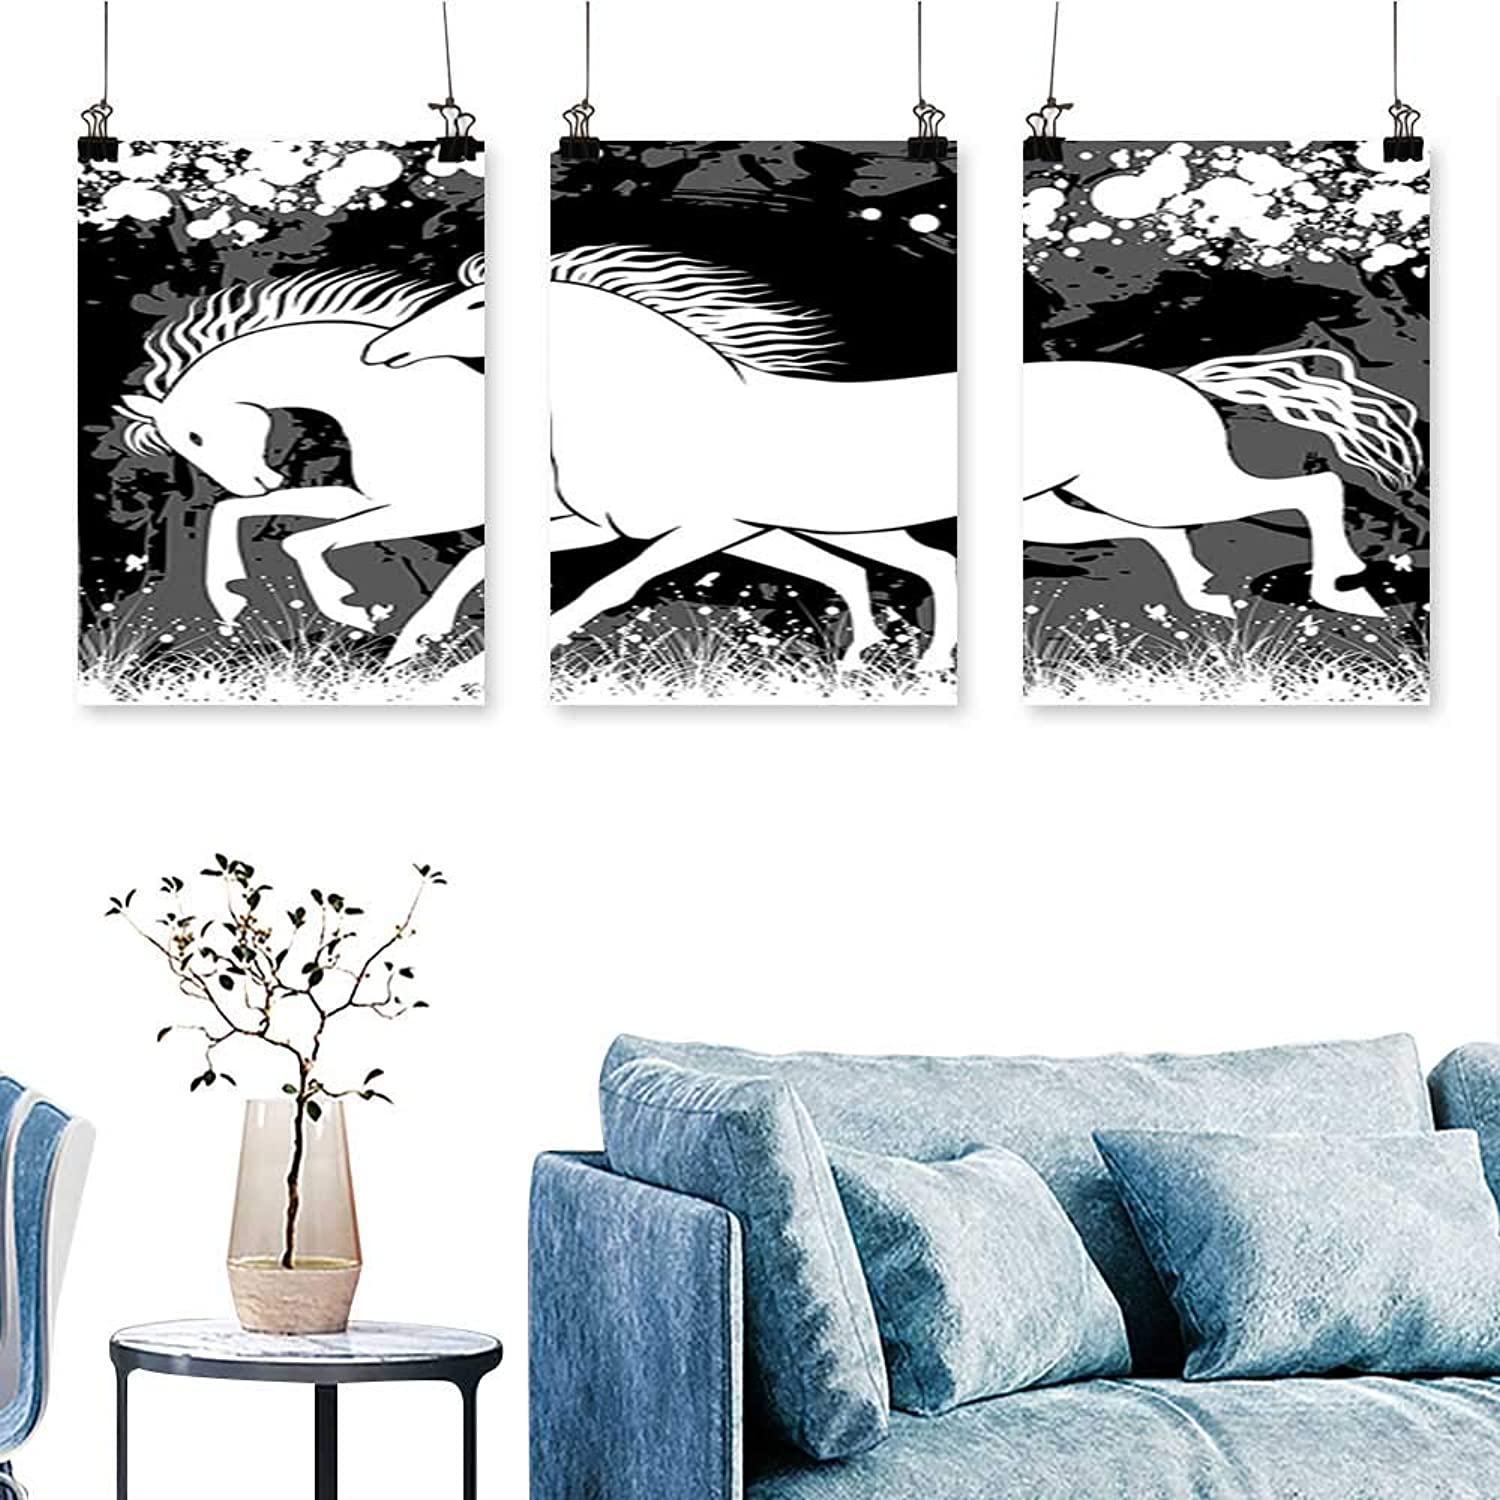 SCOCICI1588 3 Panels Triptych Antique Roman Time Gladiator Two Race Horses with Paint Marks Image Black White for Home Modern Decoration No Frame 30 INCH X 60 INCH X 3PCS